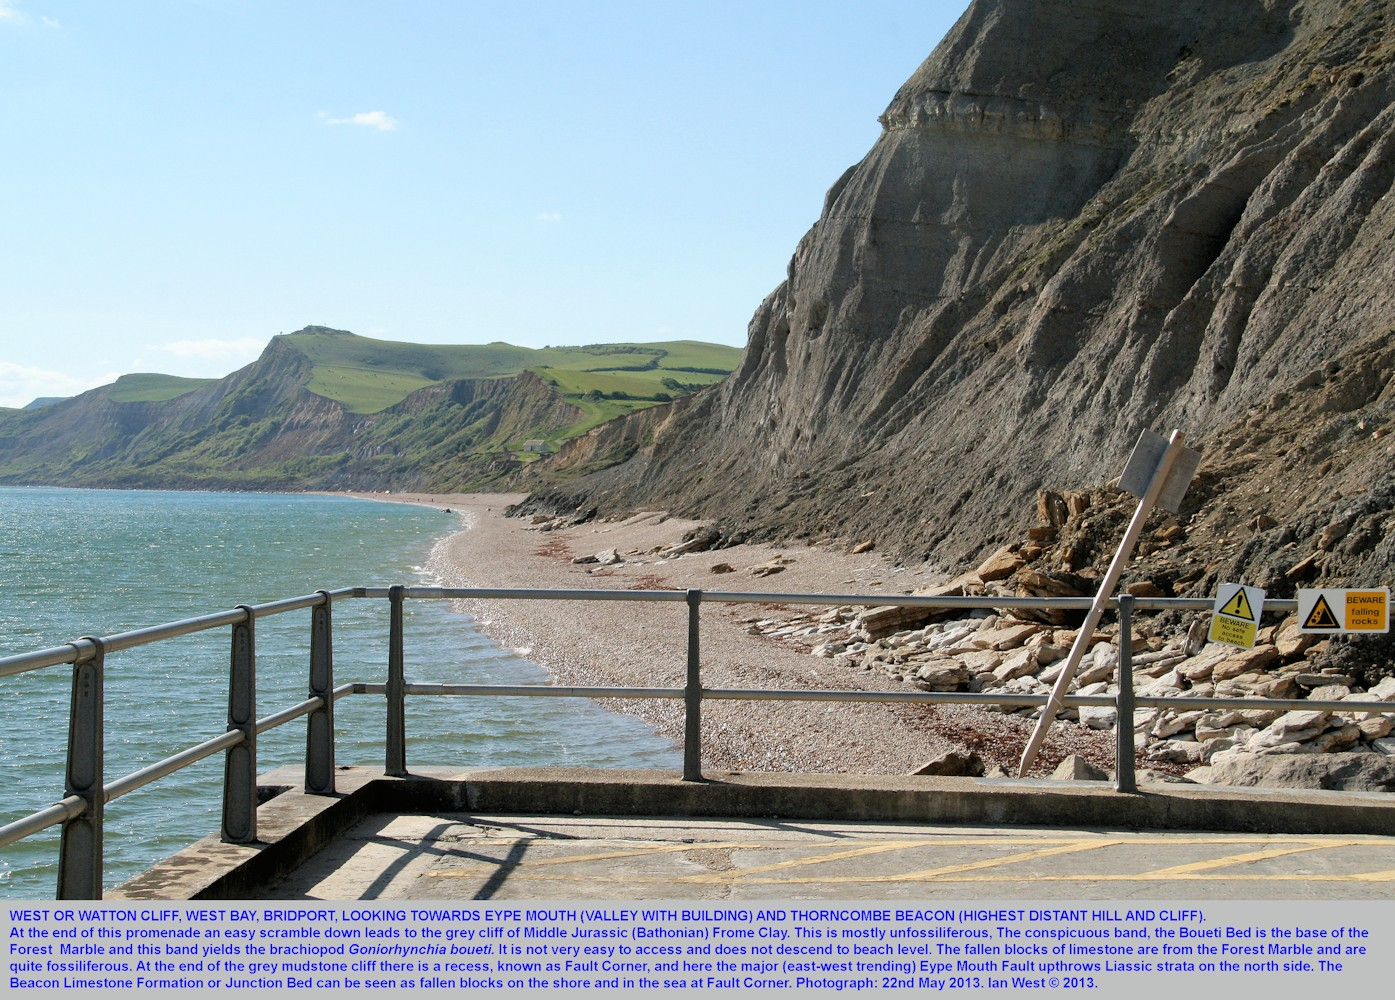 A view from the western end of the promenade, West Bay, Bridport, Dorset, showing West Cliff or Watton Cliff and on to Thorncombe Beacon, 22nd May 2013